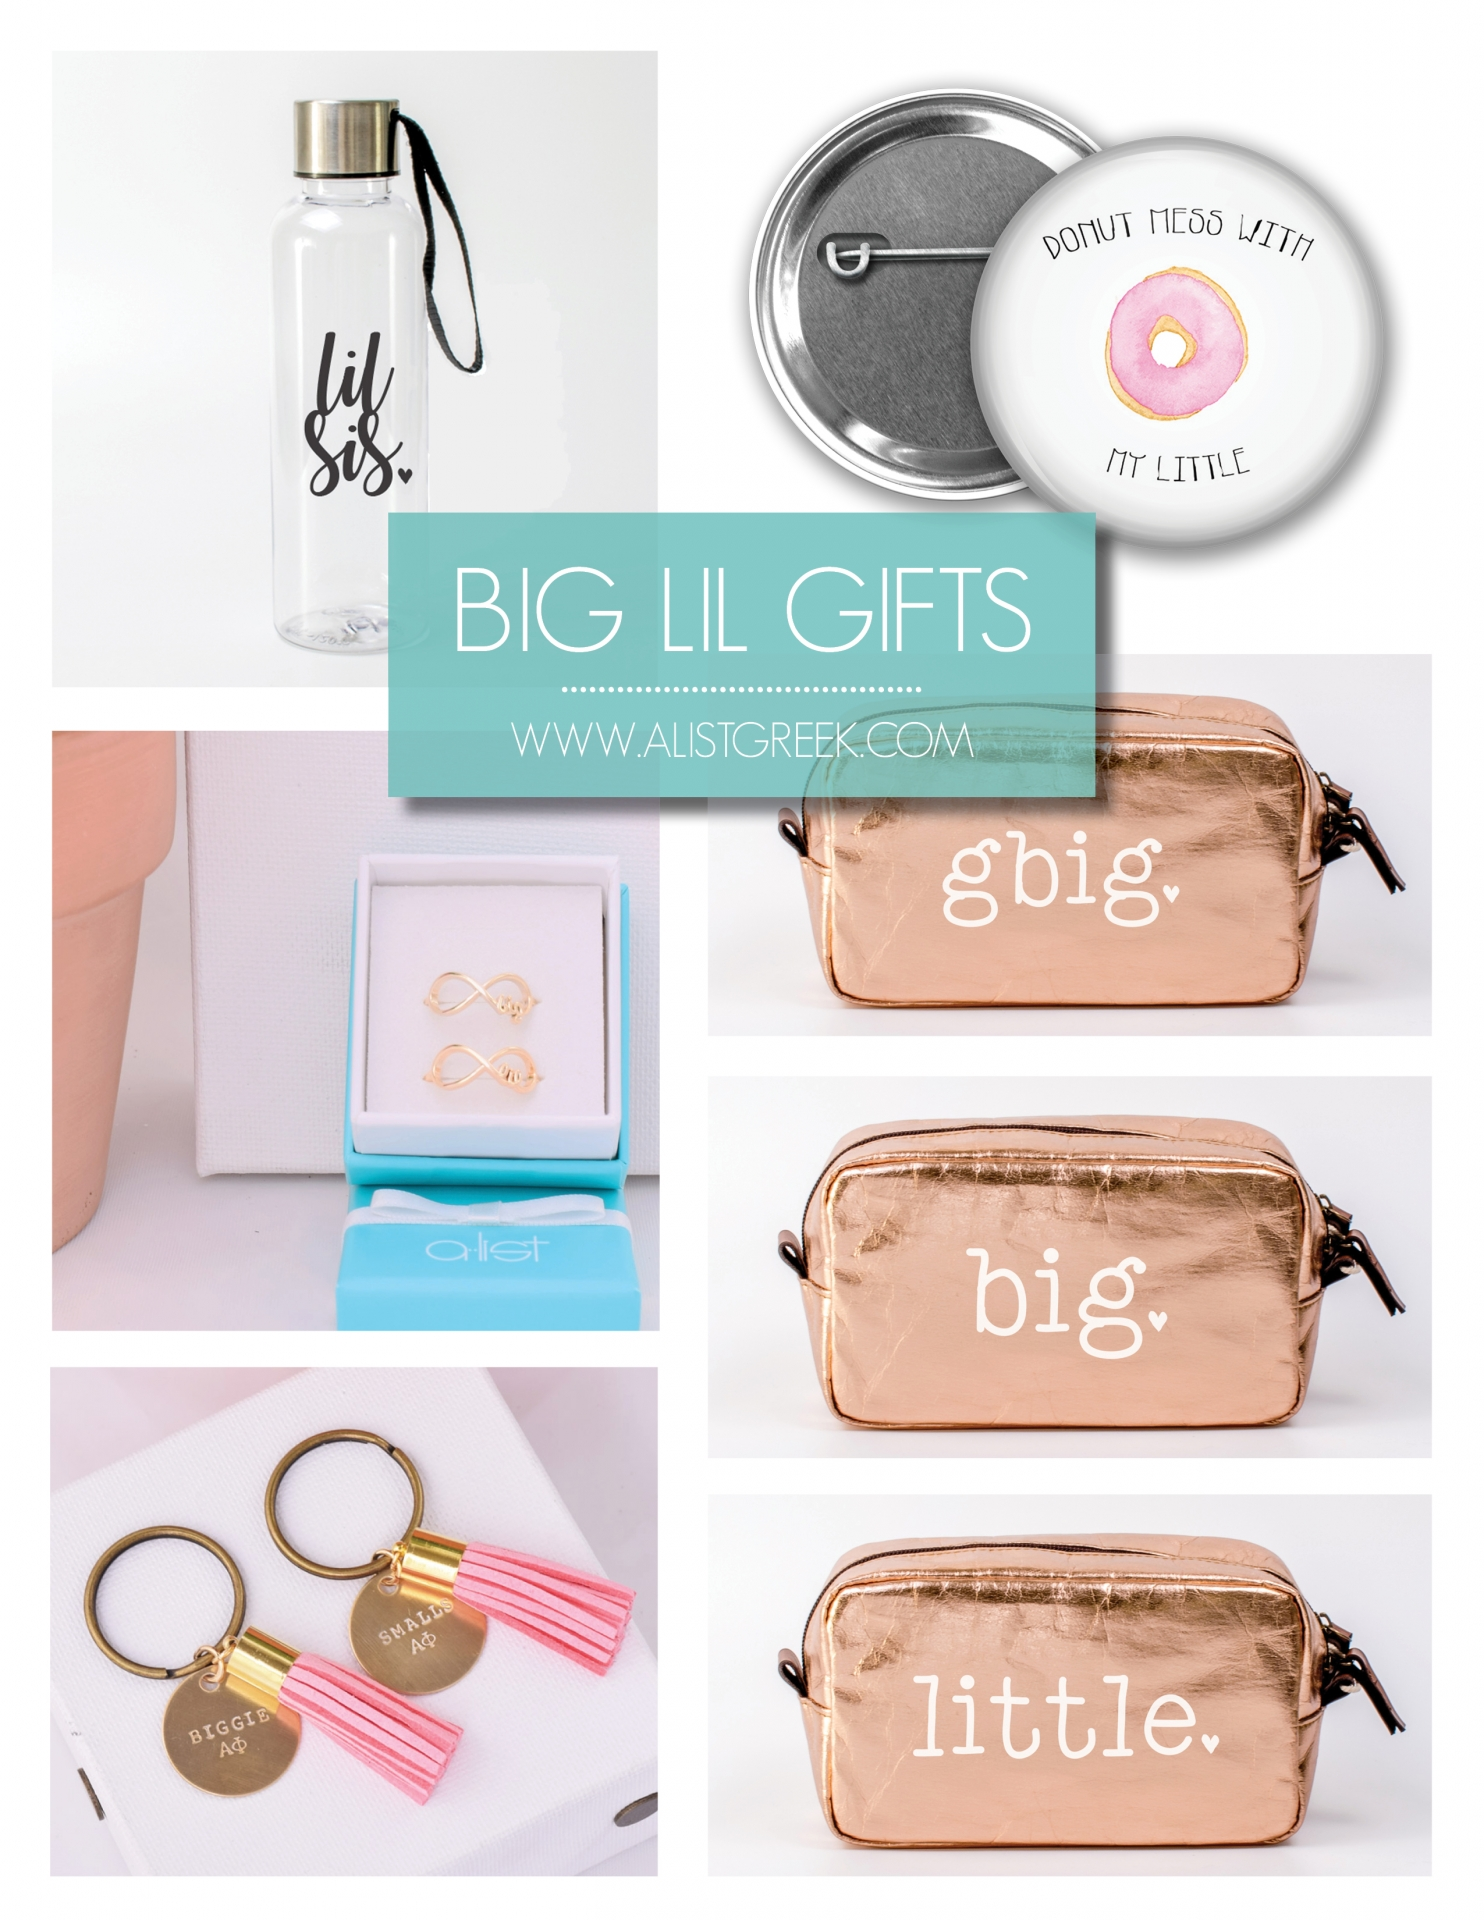 Big Little Sis Gifts from www.alistgreek.com